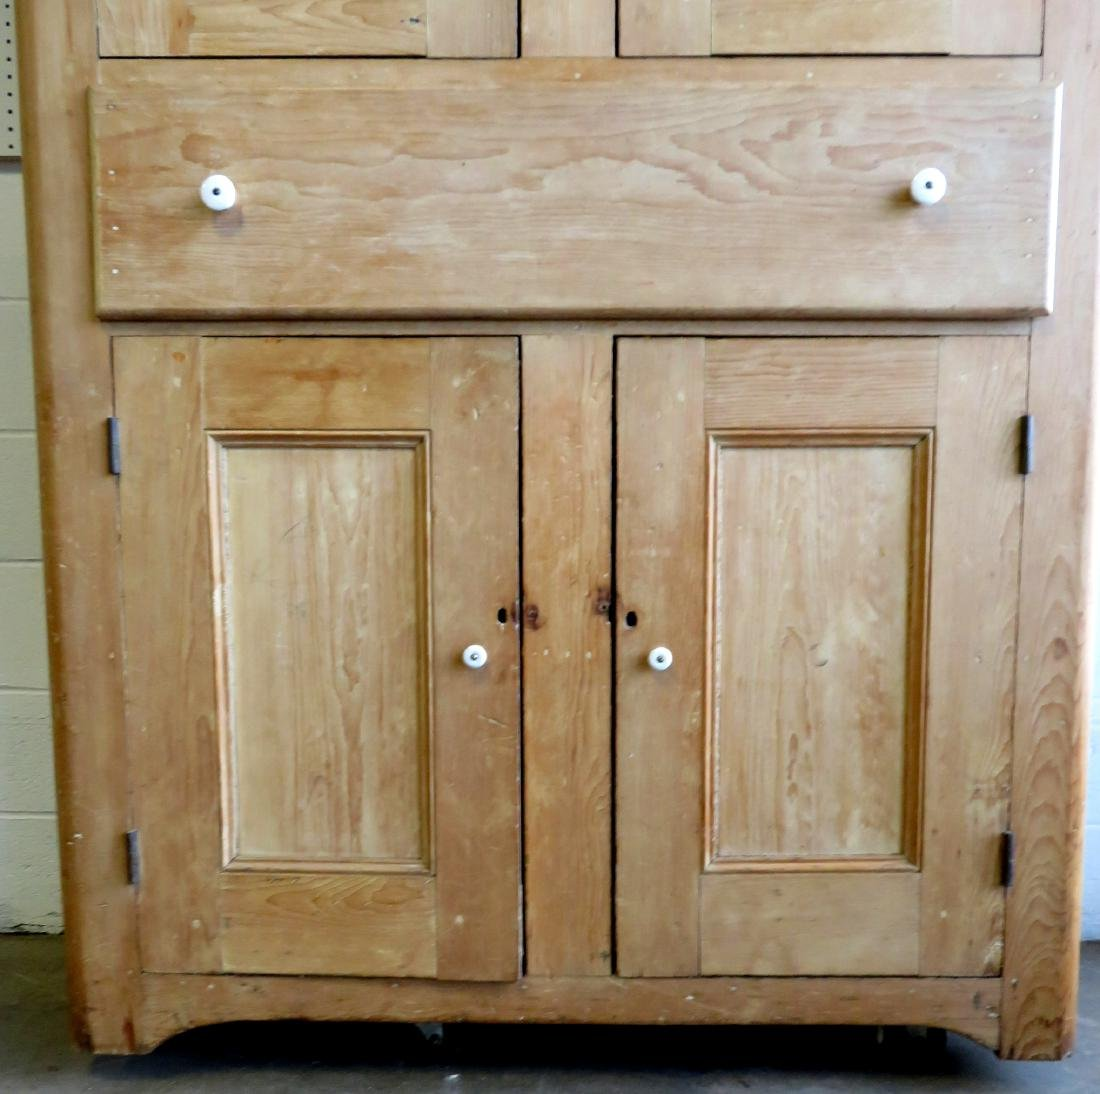 Large pine kitchen cupboard with white porcelain knobs, - 3